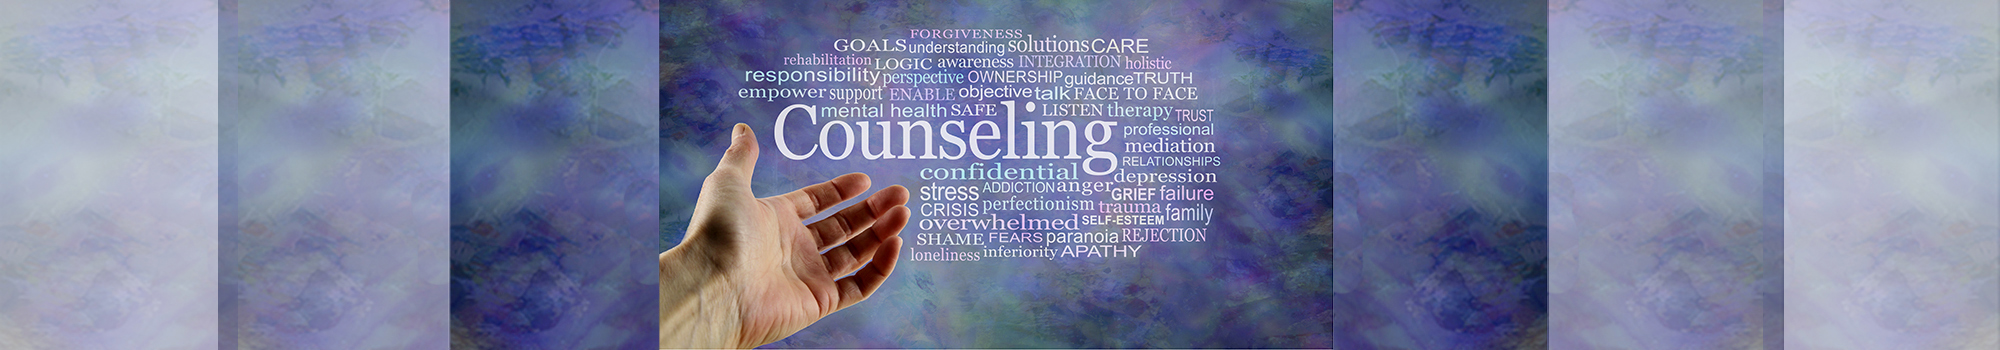 Counseling_definition_blend